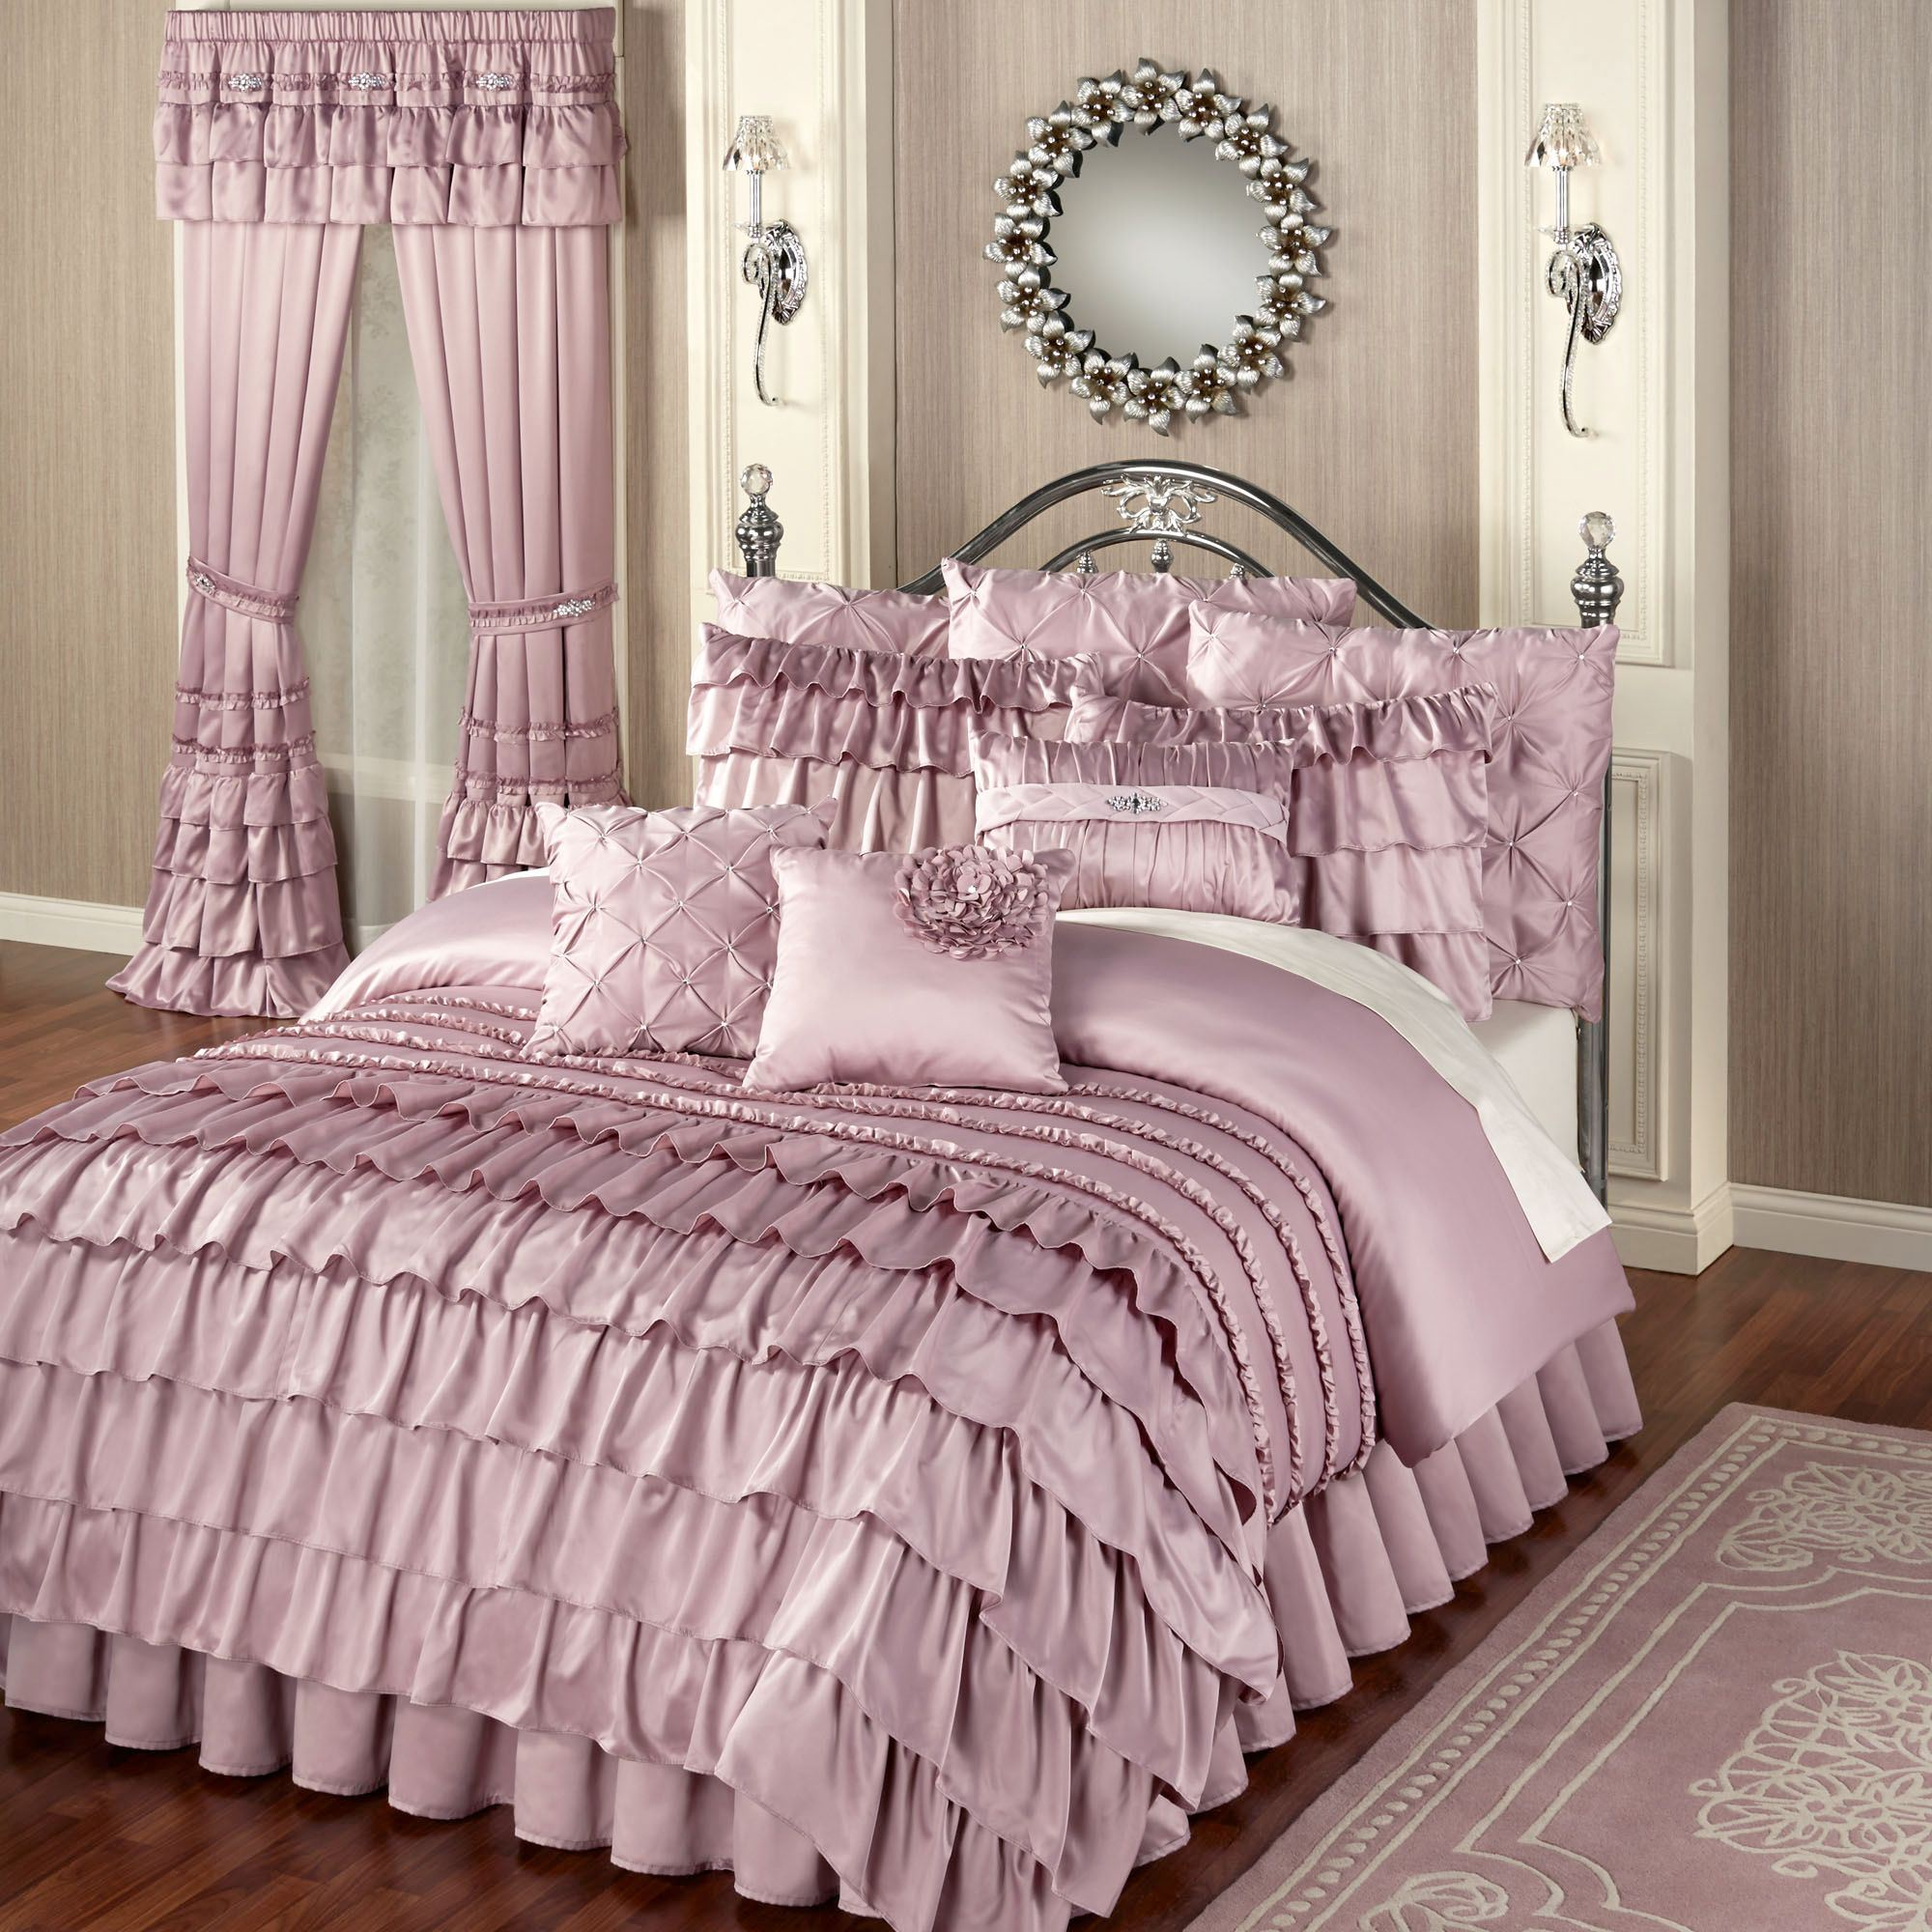 Beautiful Ruffle Comforter is The Best Idea for Queen Bedsize: Light Pink Duvet Cover Ruffle Comforter And Pink Rug